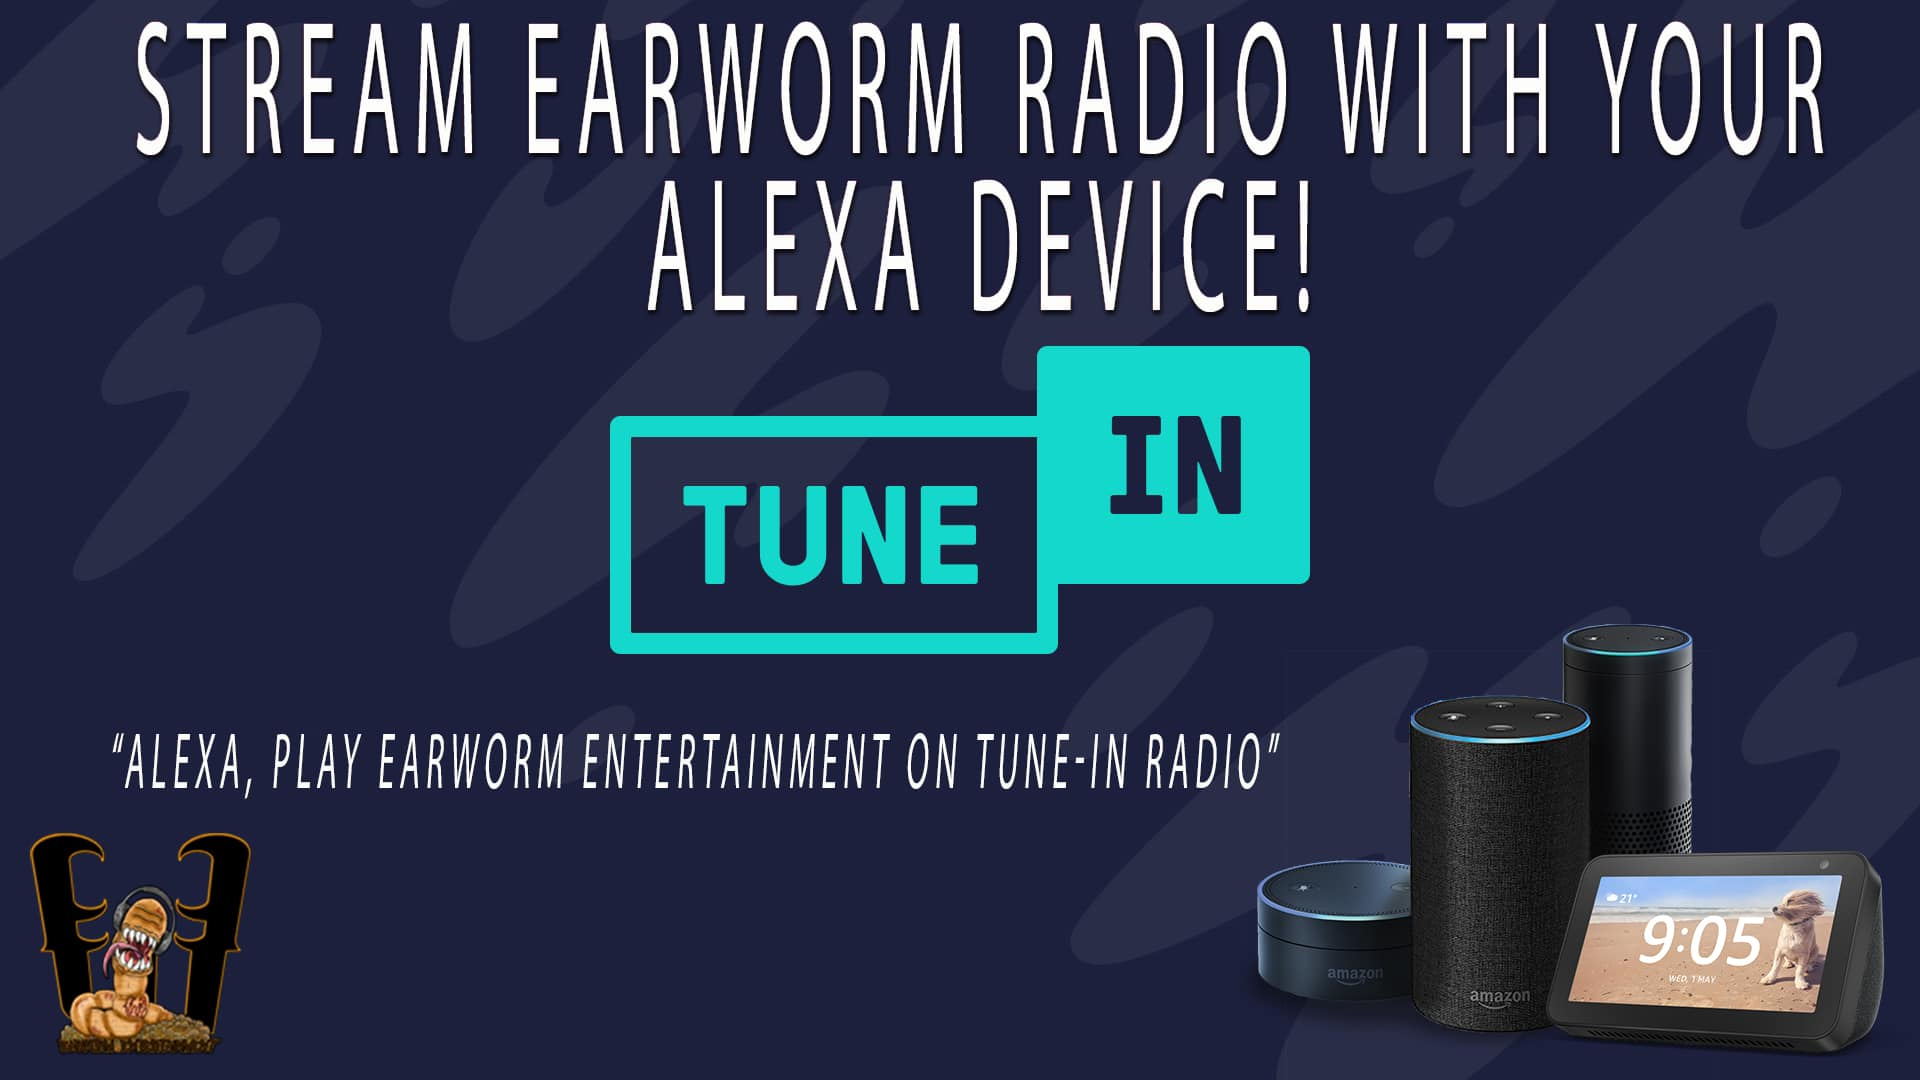 Use Your Alexa Device With Earworm Radio